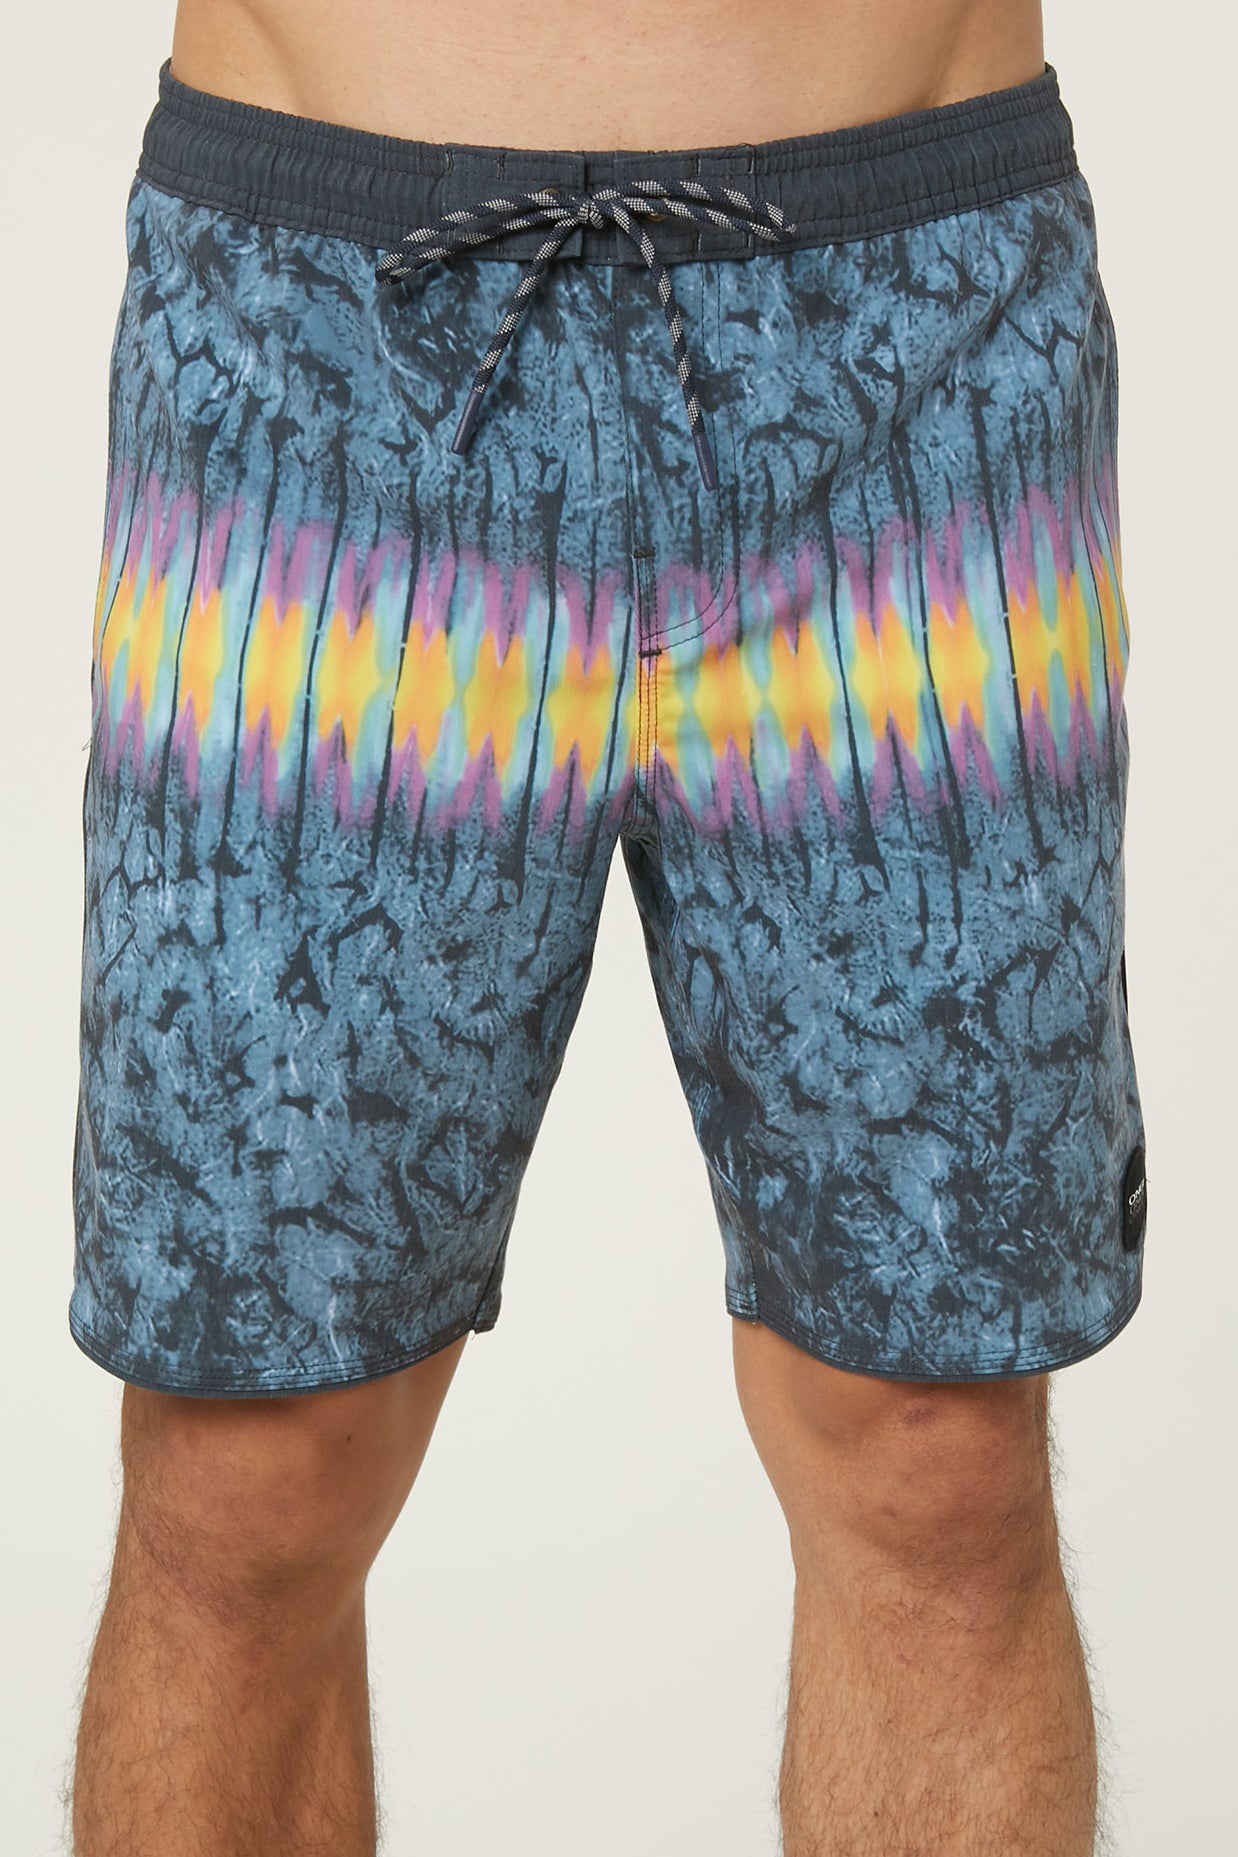 Hodge Podge Volley Boardshorts - Dust Blue | O'Neill